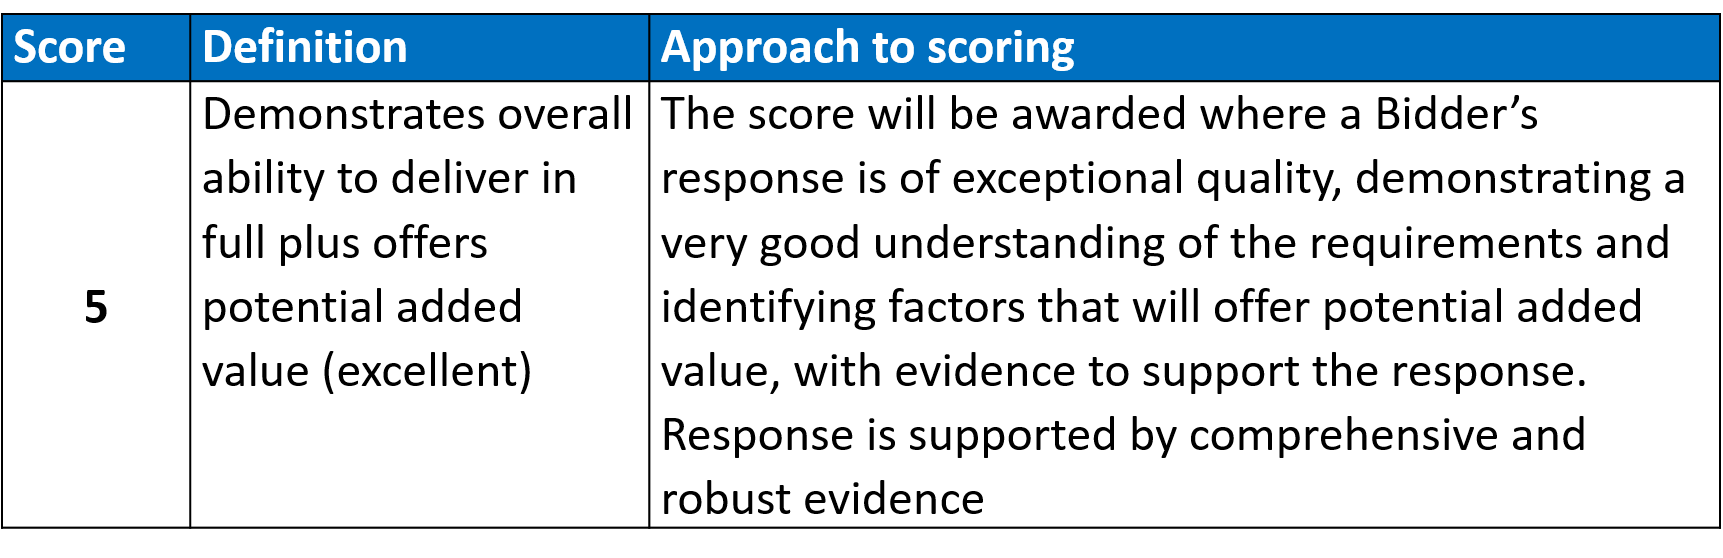 approach to scoring